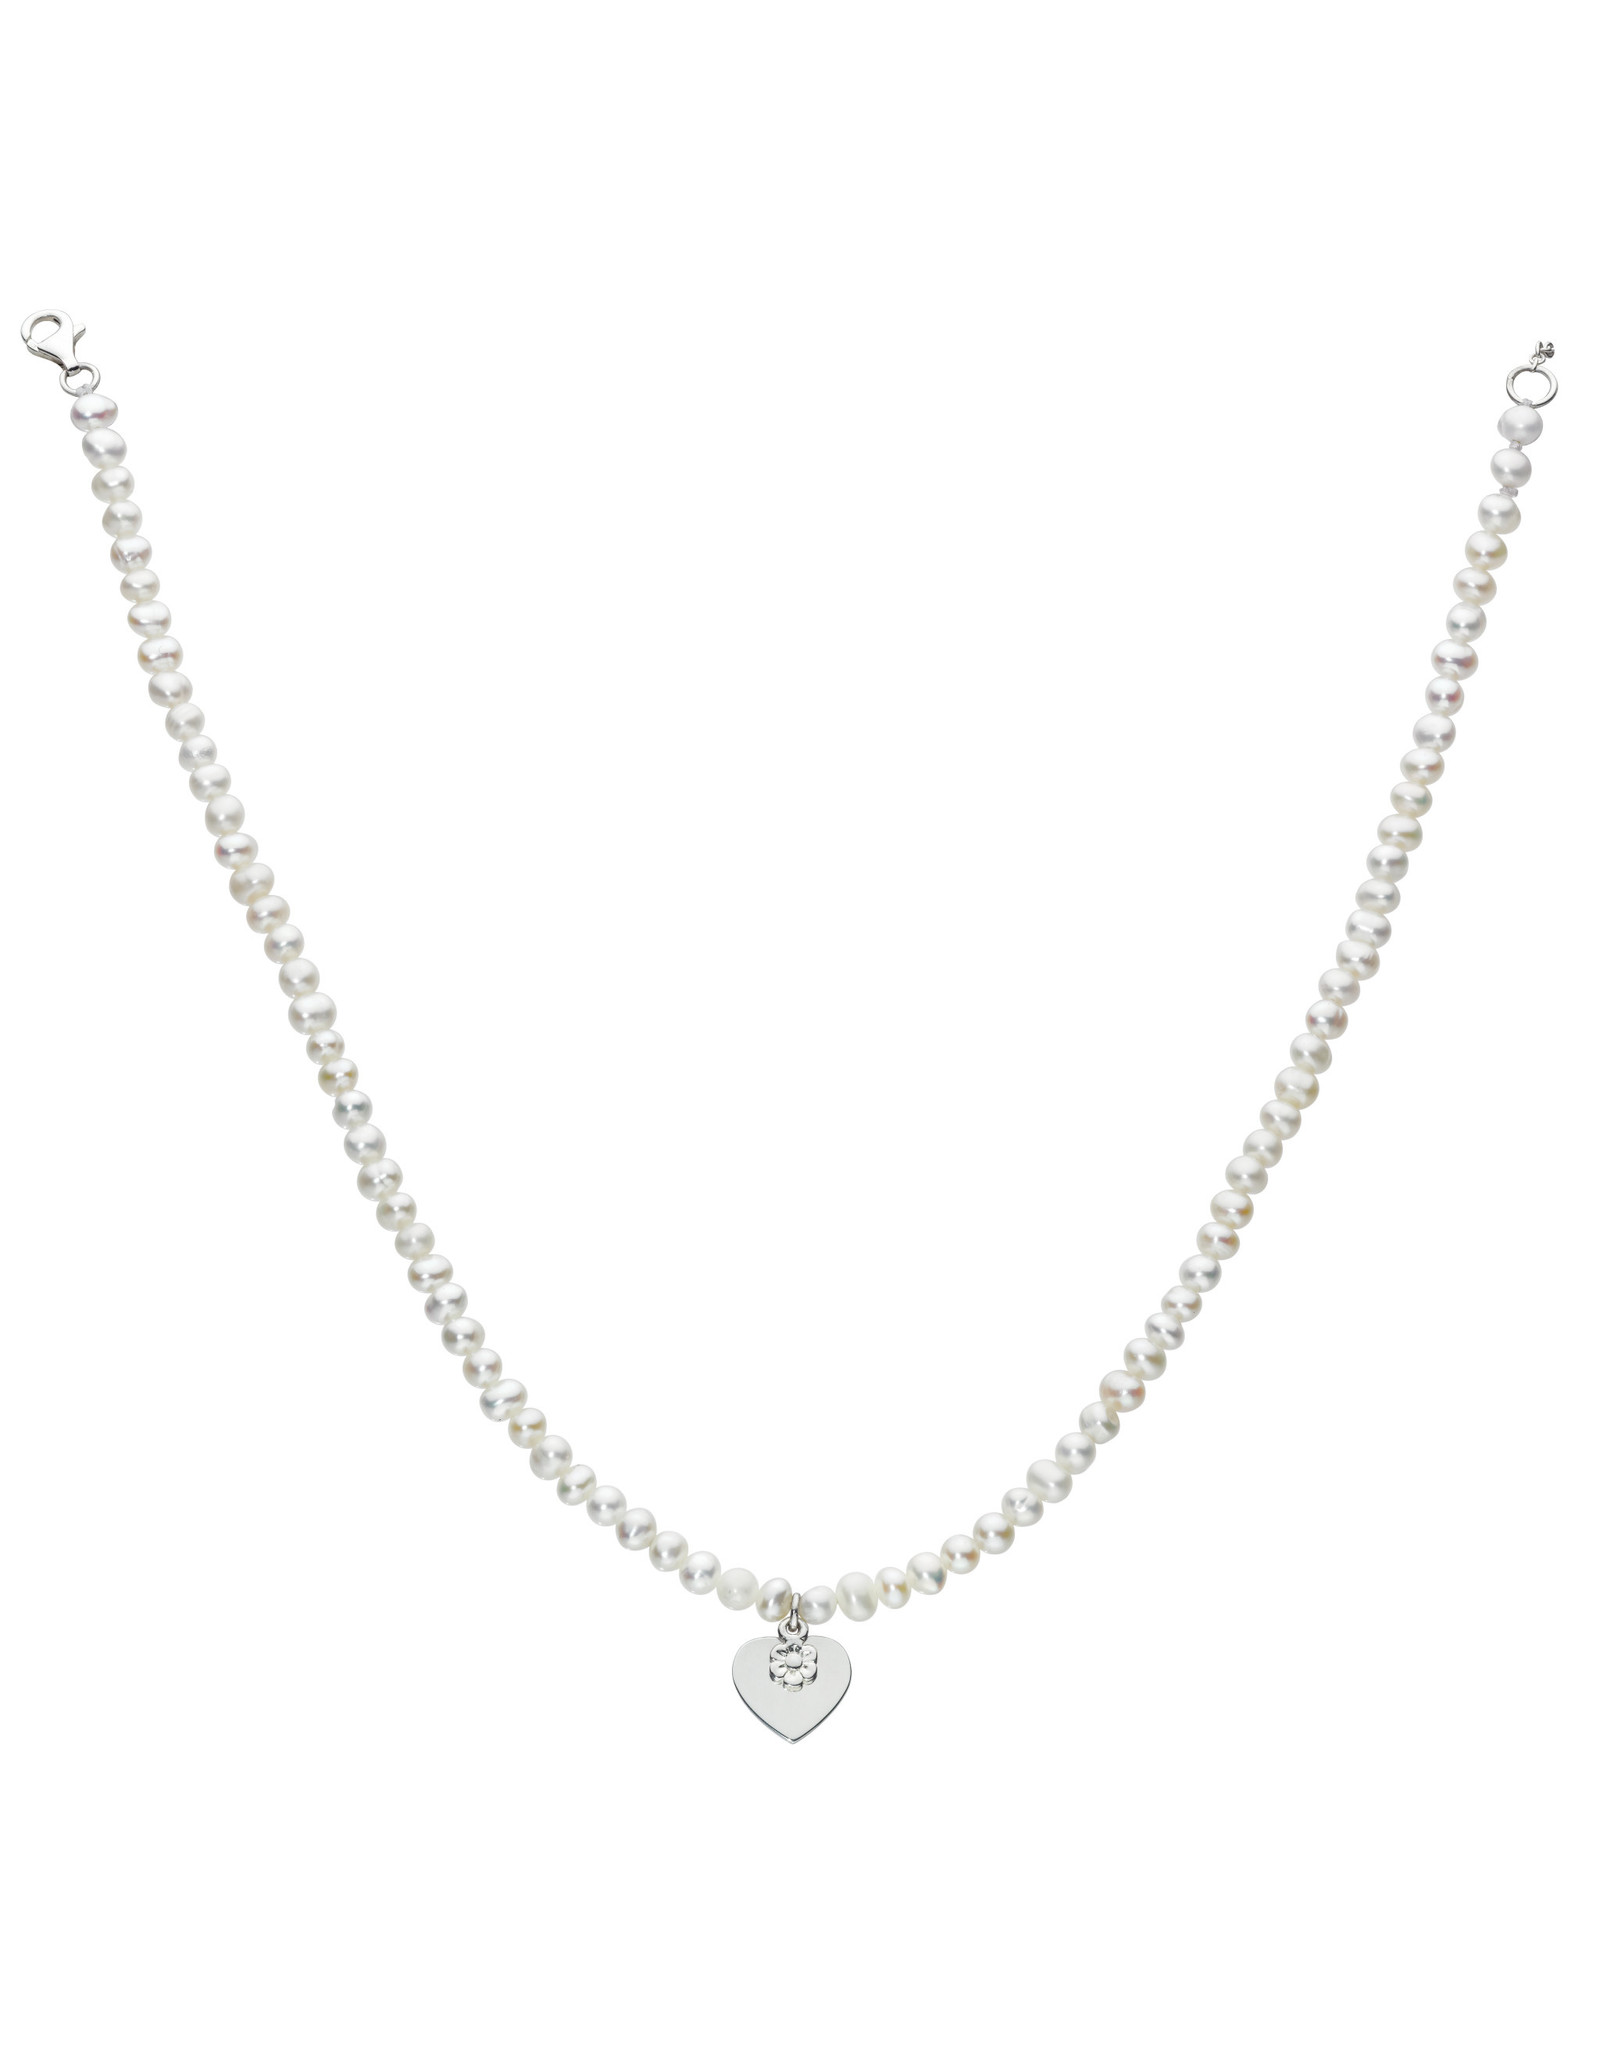 """Girls Freshwater Pearl Necklace with Heart and Daisy Charm, 12""""- 14"""""""